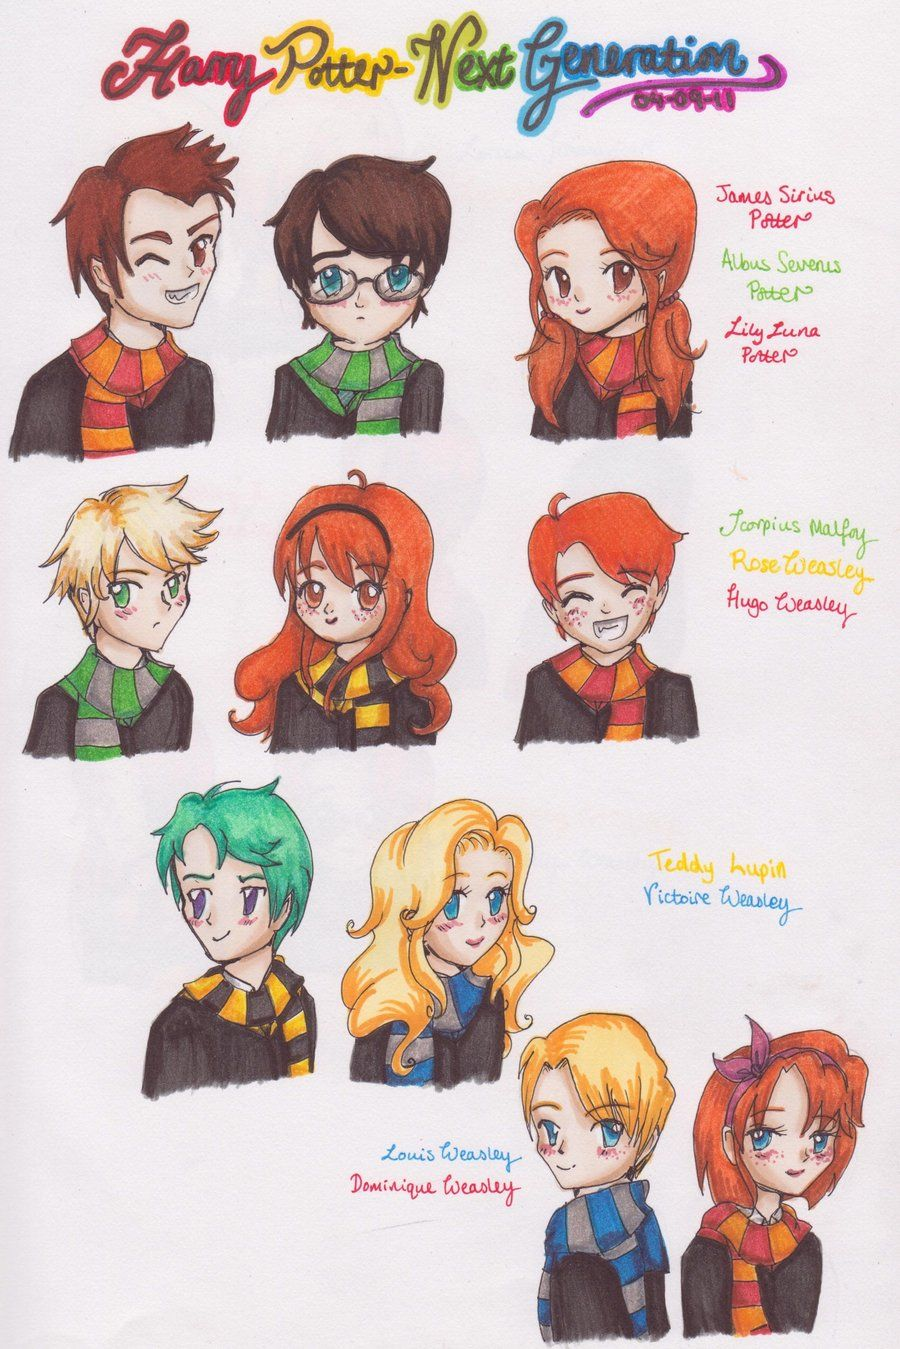 Harry Potter Next Generation1 By Kawaiisweetie Chan On Deviantart Harry Potter Next Generation Harry Potter Fan Art Harry Potter Art